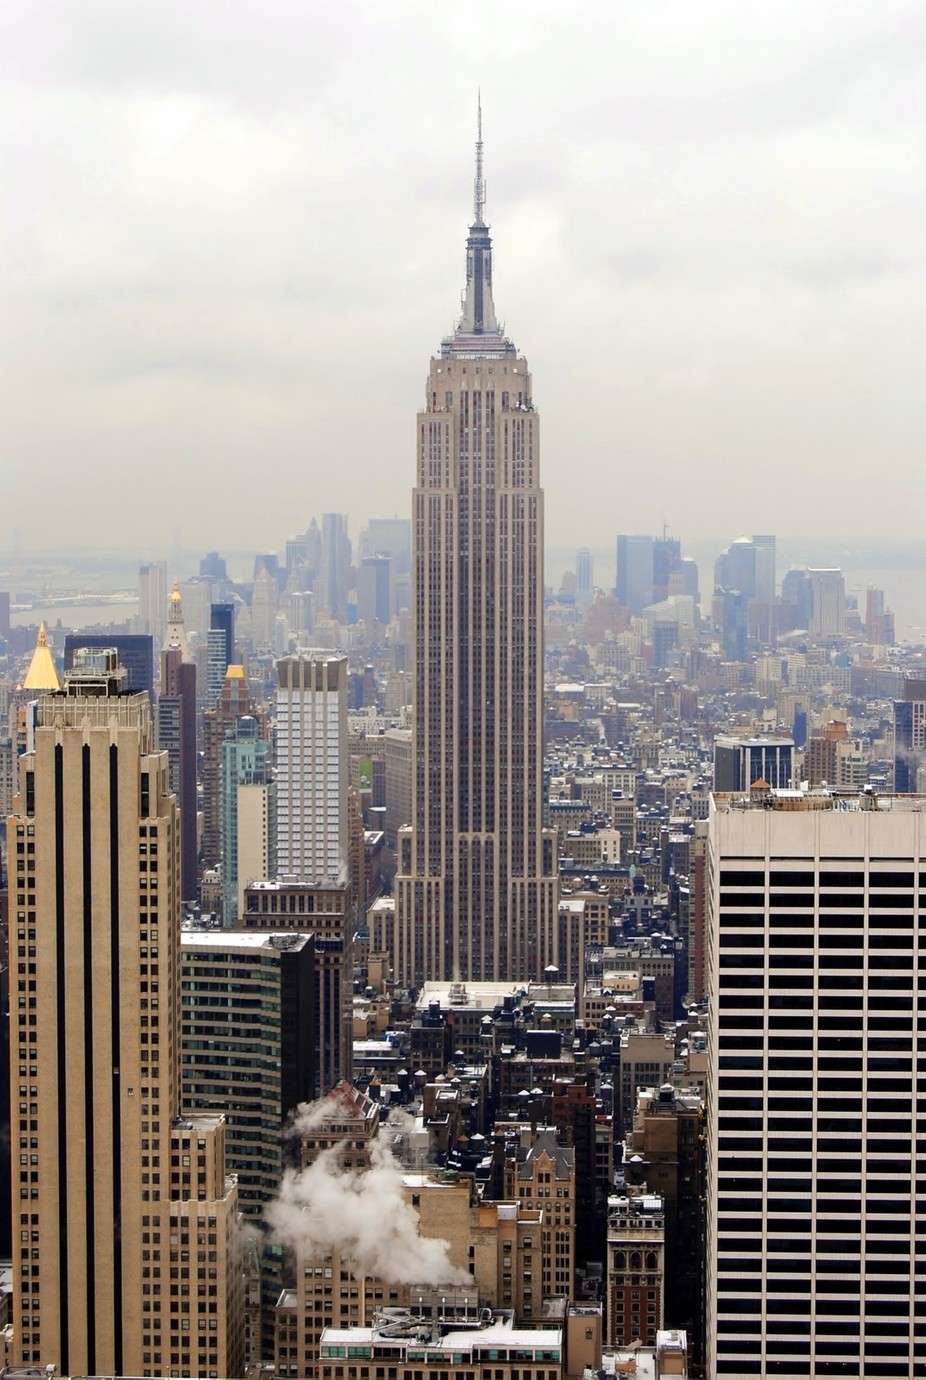 Empire State Bldg, NYC by mariiita66 - City Views Photo Contest